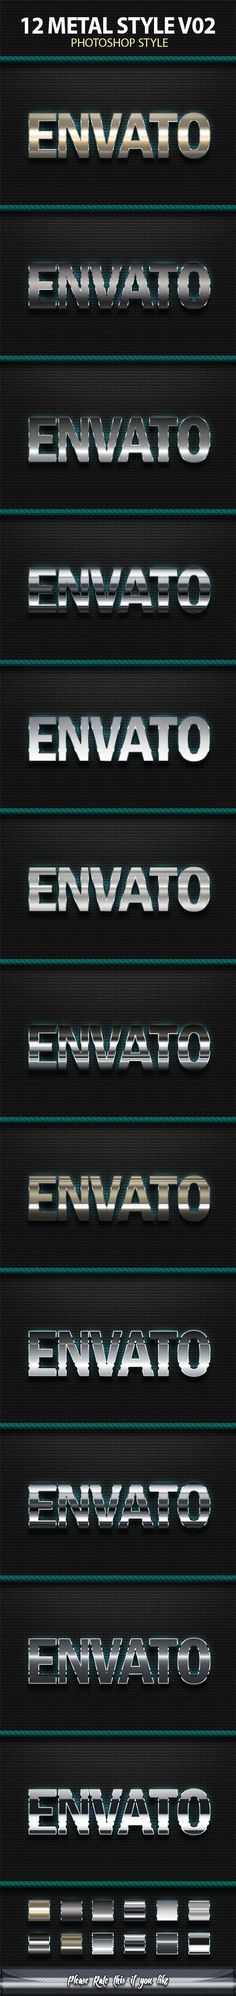 Buy 12 Metal styles by Ilham_desain on GraphicRiver. 12 Metal styles Text Effect. Great Work with Bold font. You can use it in small or large text. Photoshop Text Effects, Photoshop Fail, Creative Photoshop, 3d Text, Bold Fonts, Layer Style, Text Style, 3 D, Photo Editing